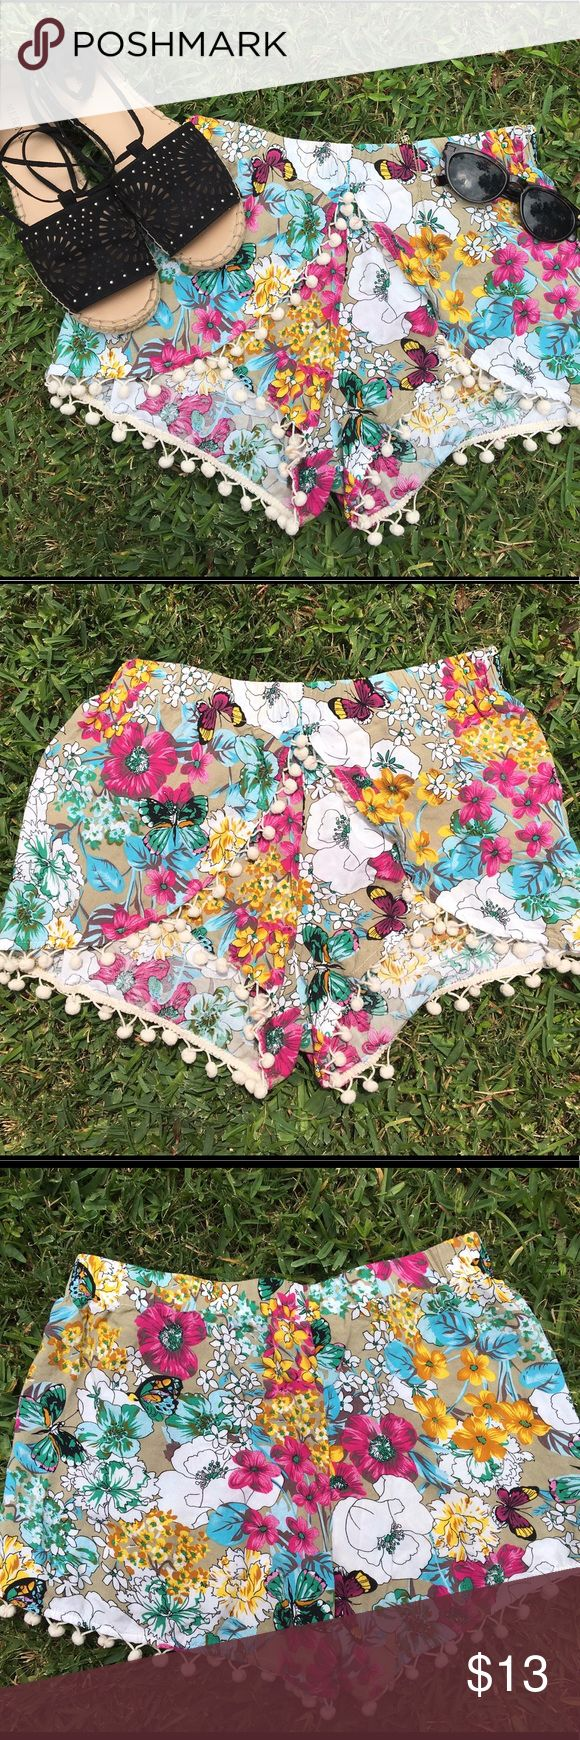 Floral patterned shorts with Pom Pom detail!! Super cute colorful patterned cotton shorts with super cute Pom Pom trim around the edges! In great condition! Perfect for spring and summer!! umgee usa Shorts